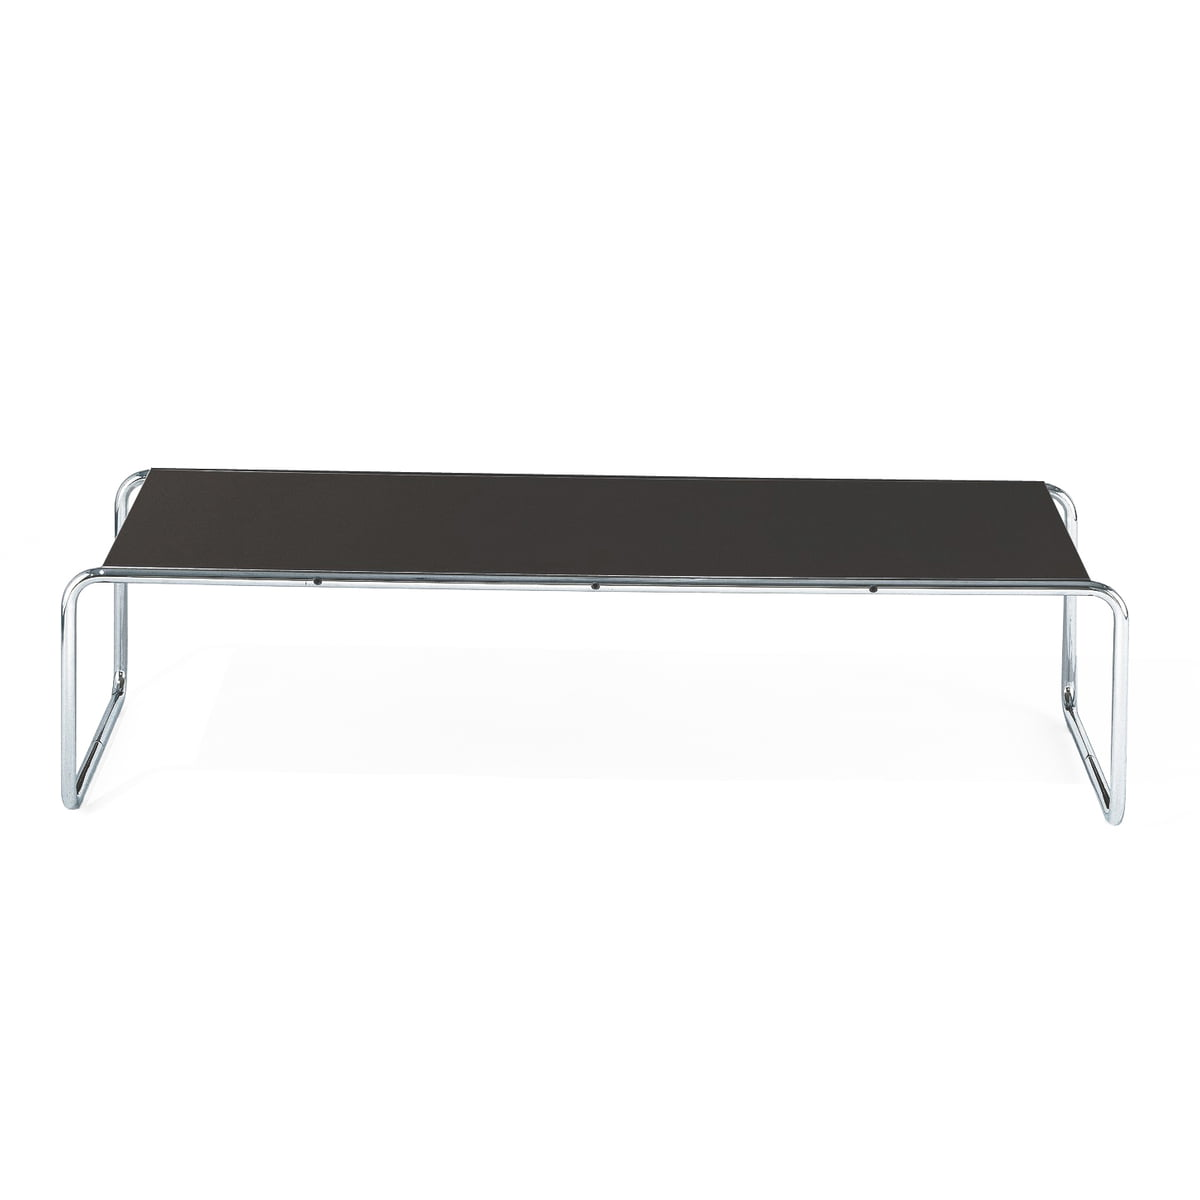 Laccio 2 coffee table by knoll in the shop knoll laccio 2 coffee table black anthracite geotapseo Images